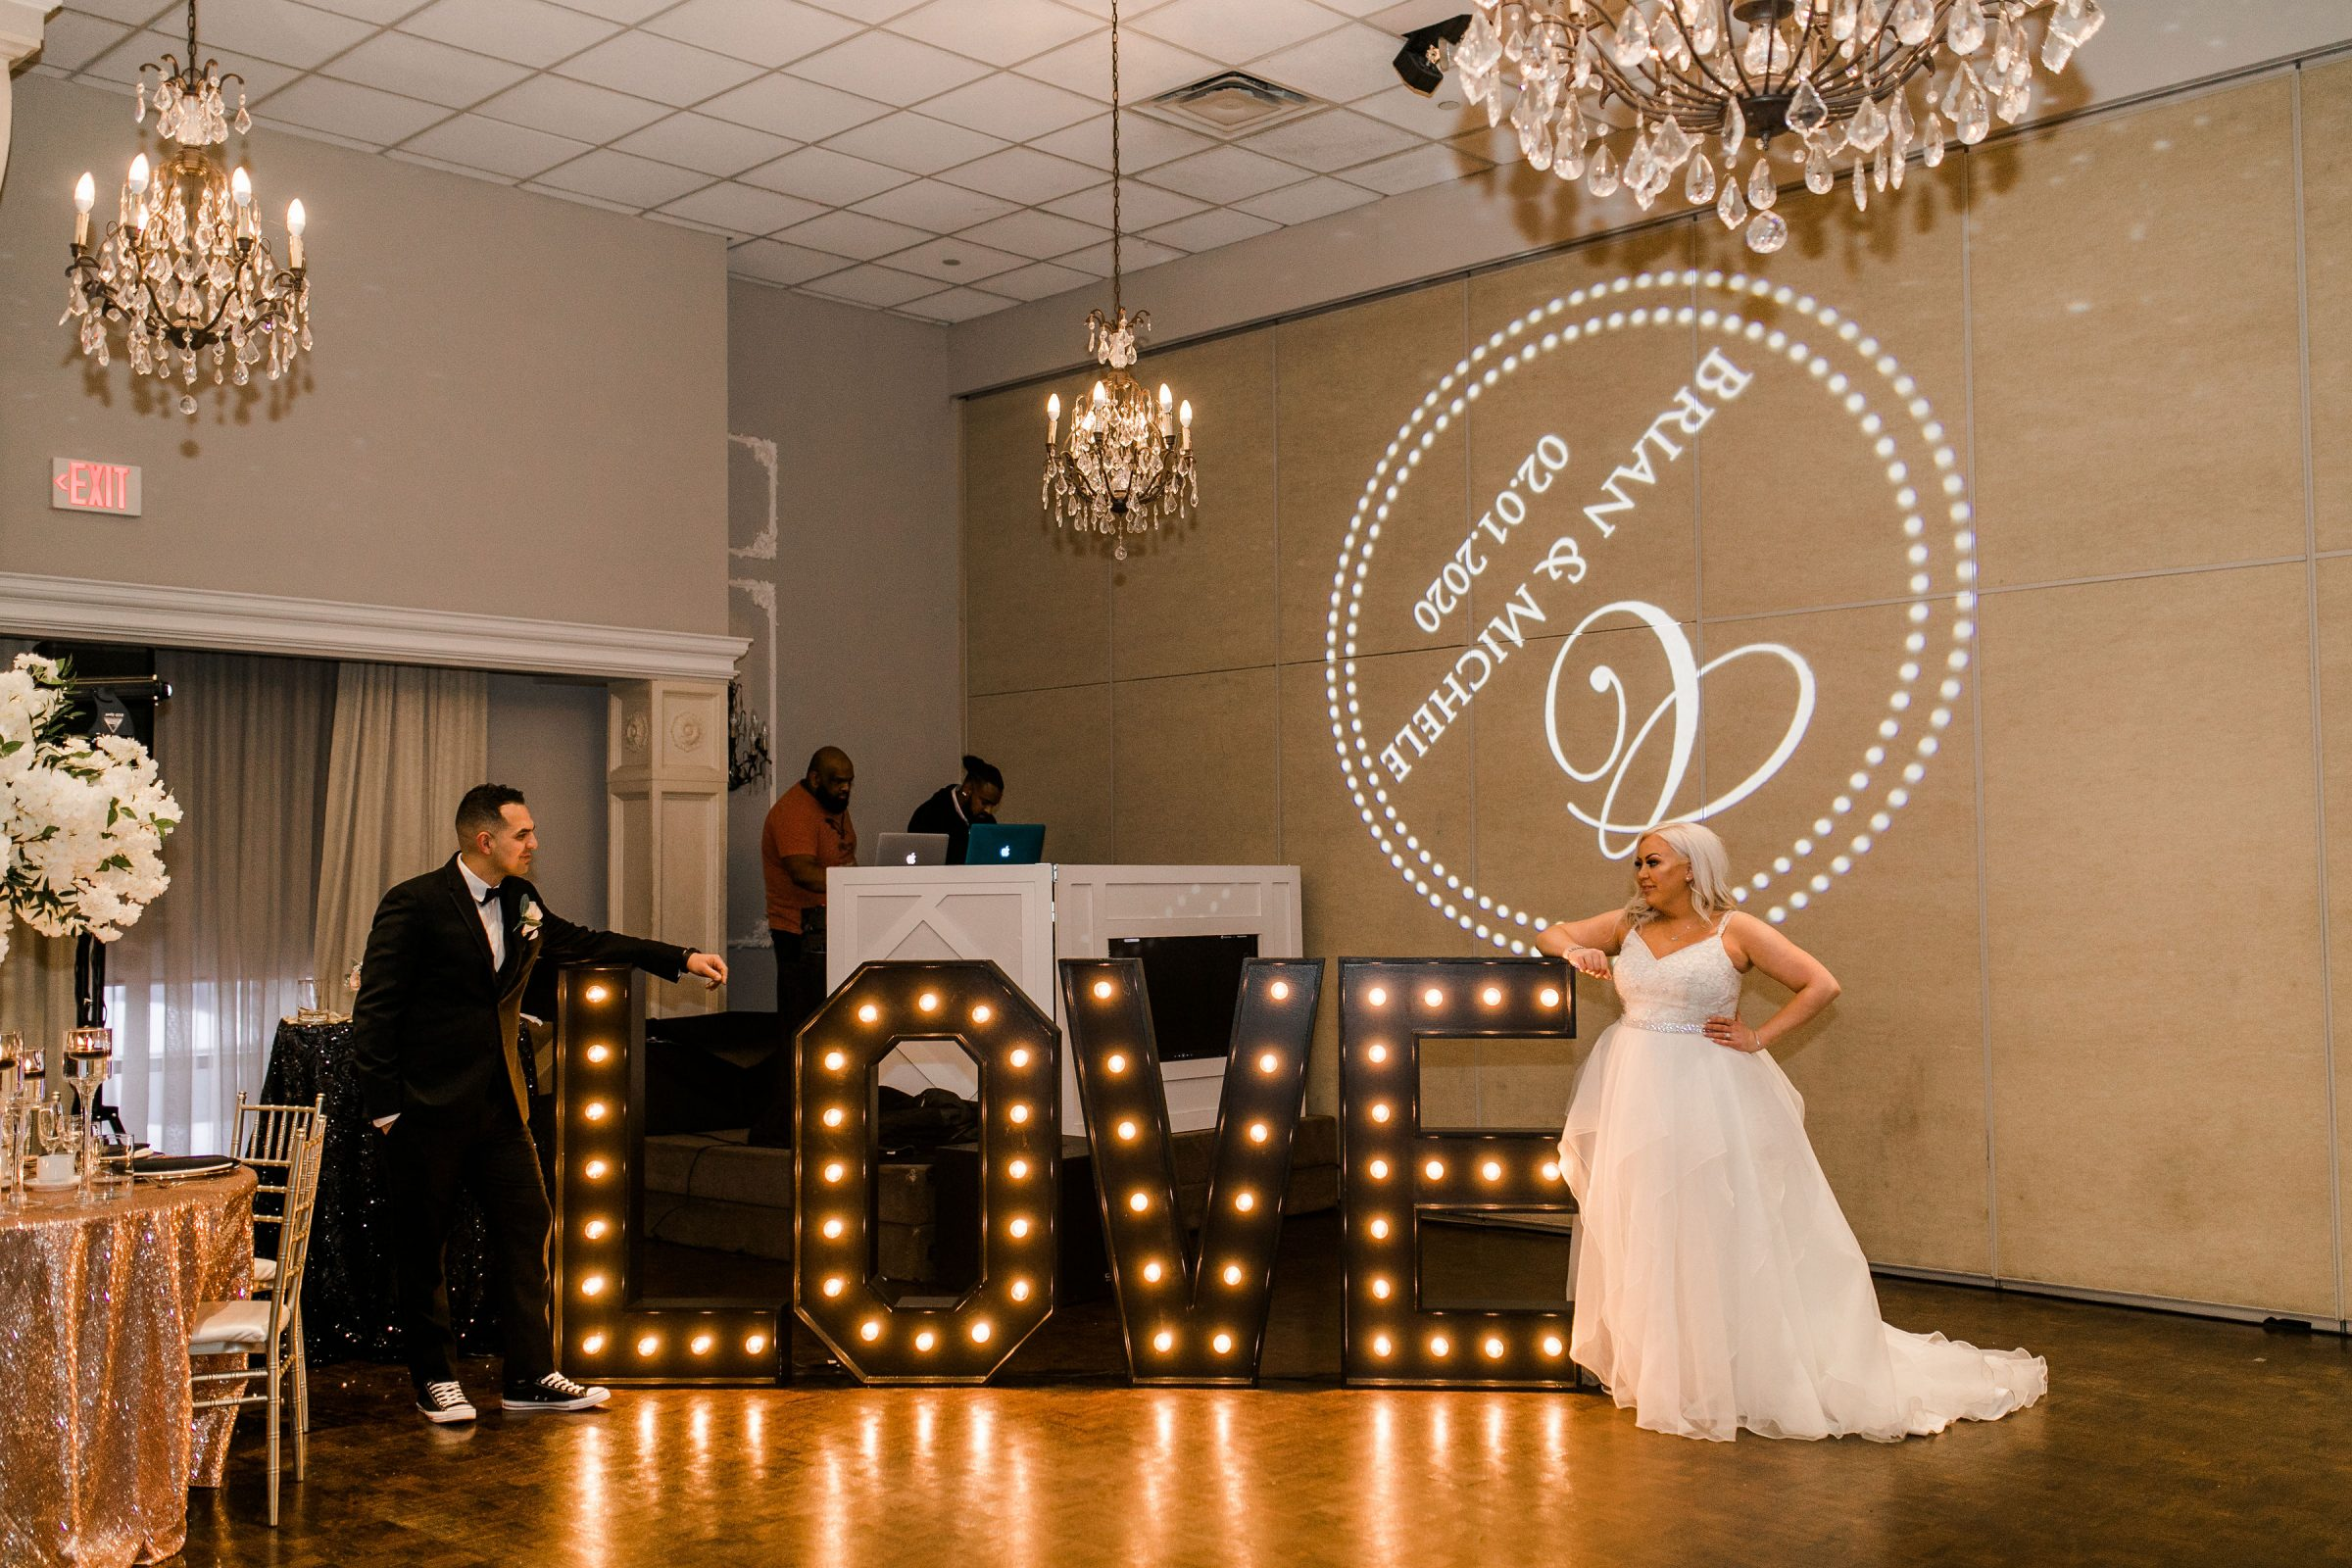 Love Light floor feature for Wedding